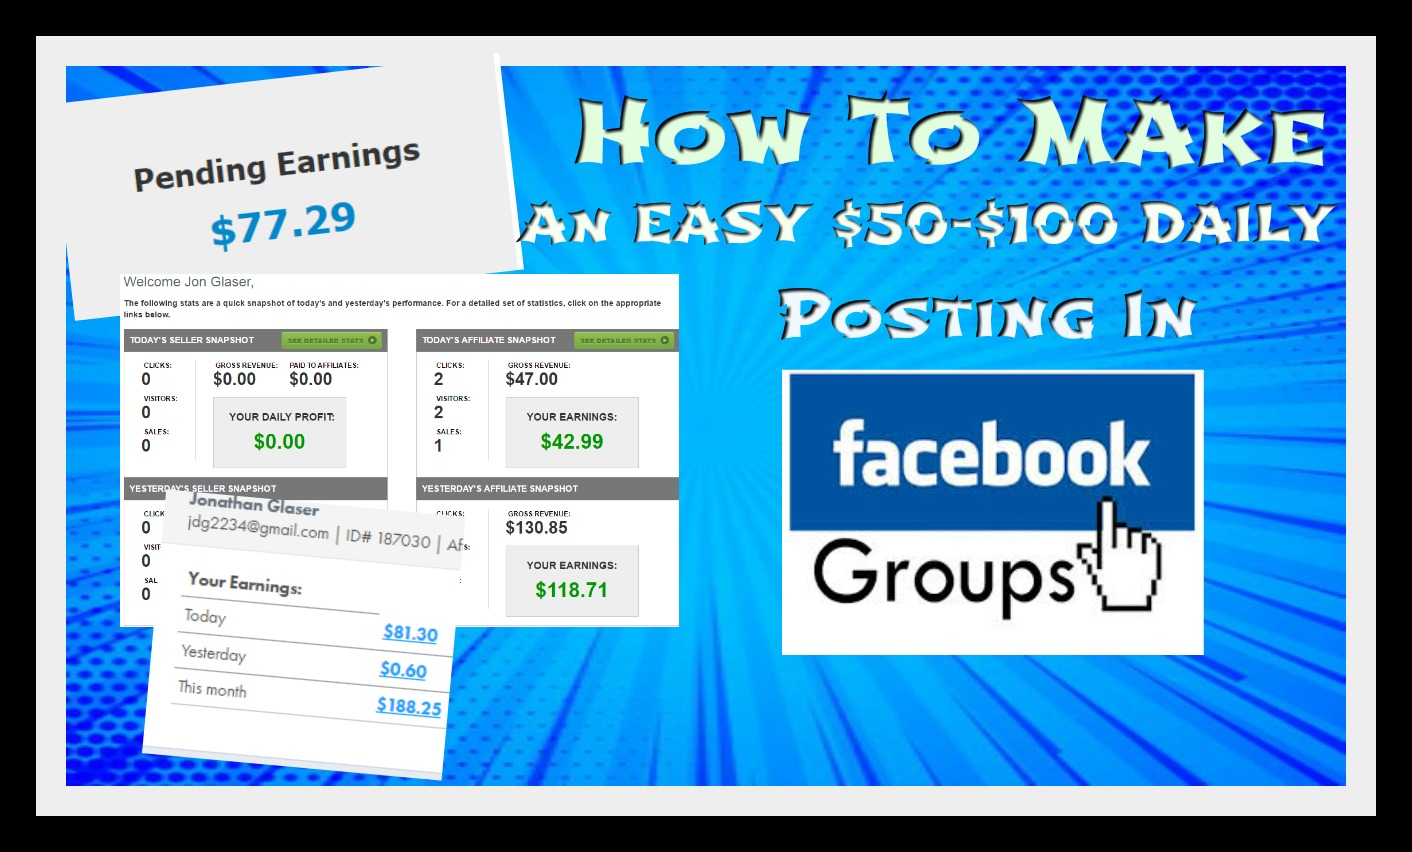 Facebook Groups Secrets: How To Make $50-$100 Daily